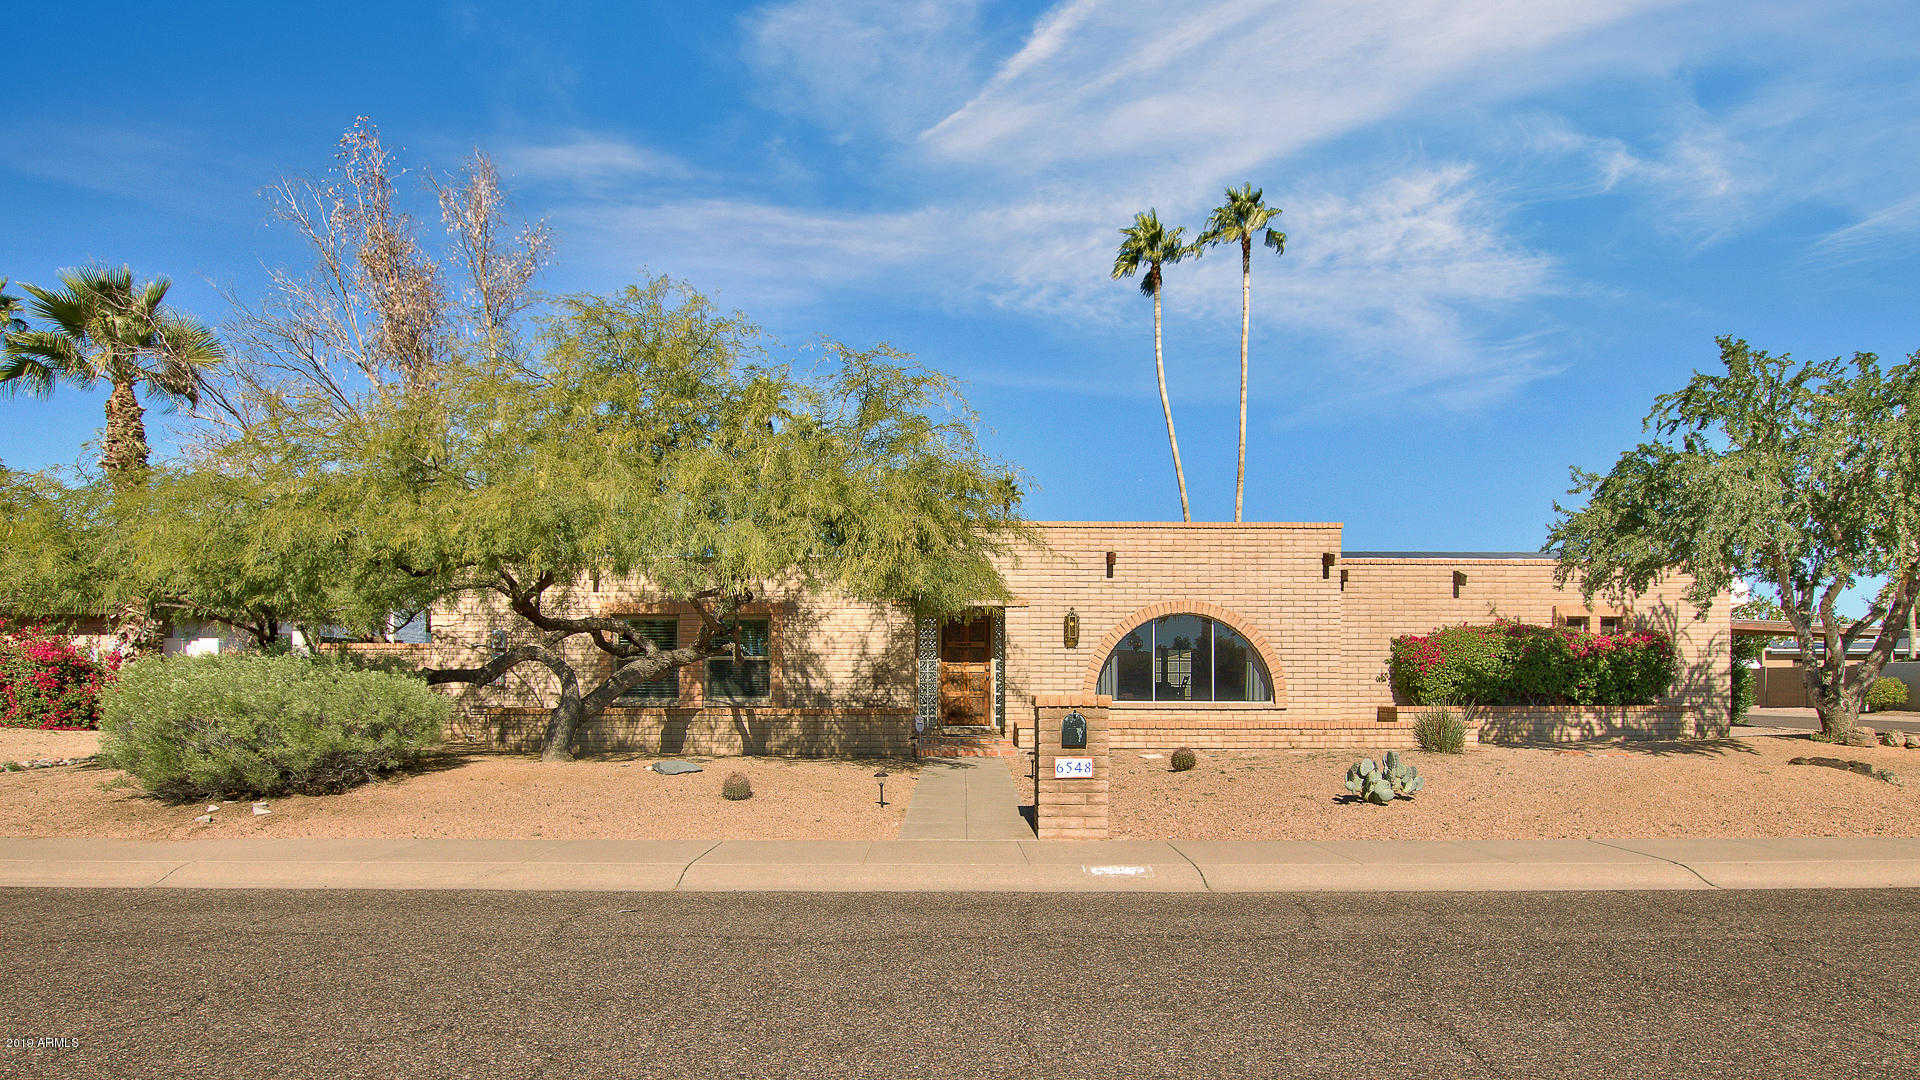 $575,000 - 4Br/2Ba - Home for Sale in Raskin Est 2 Lts 1-360, 367-402, 415-450, 463-480, Scottsdale